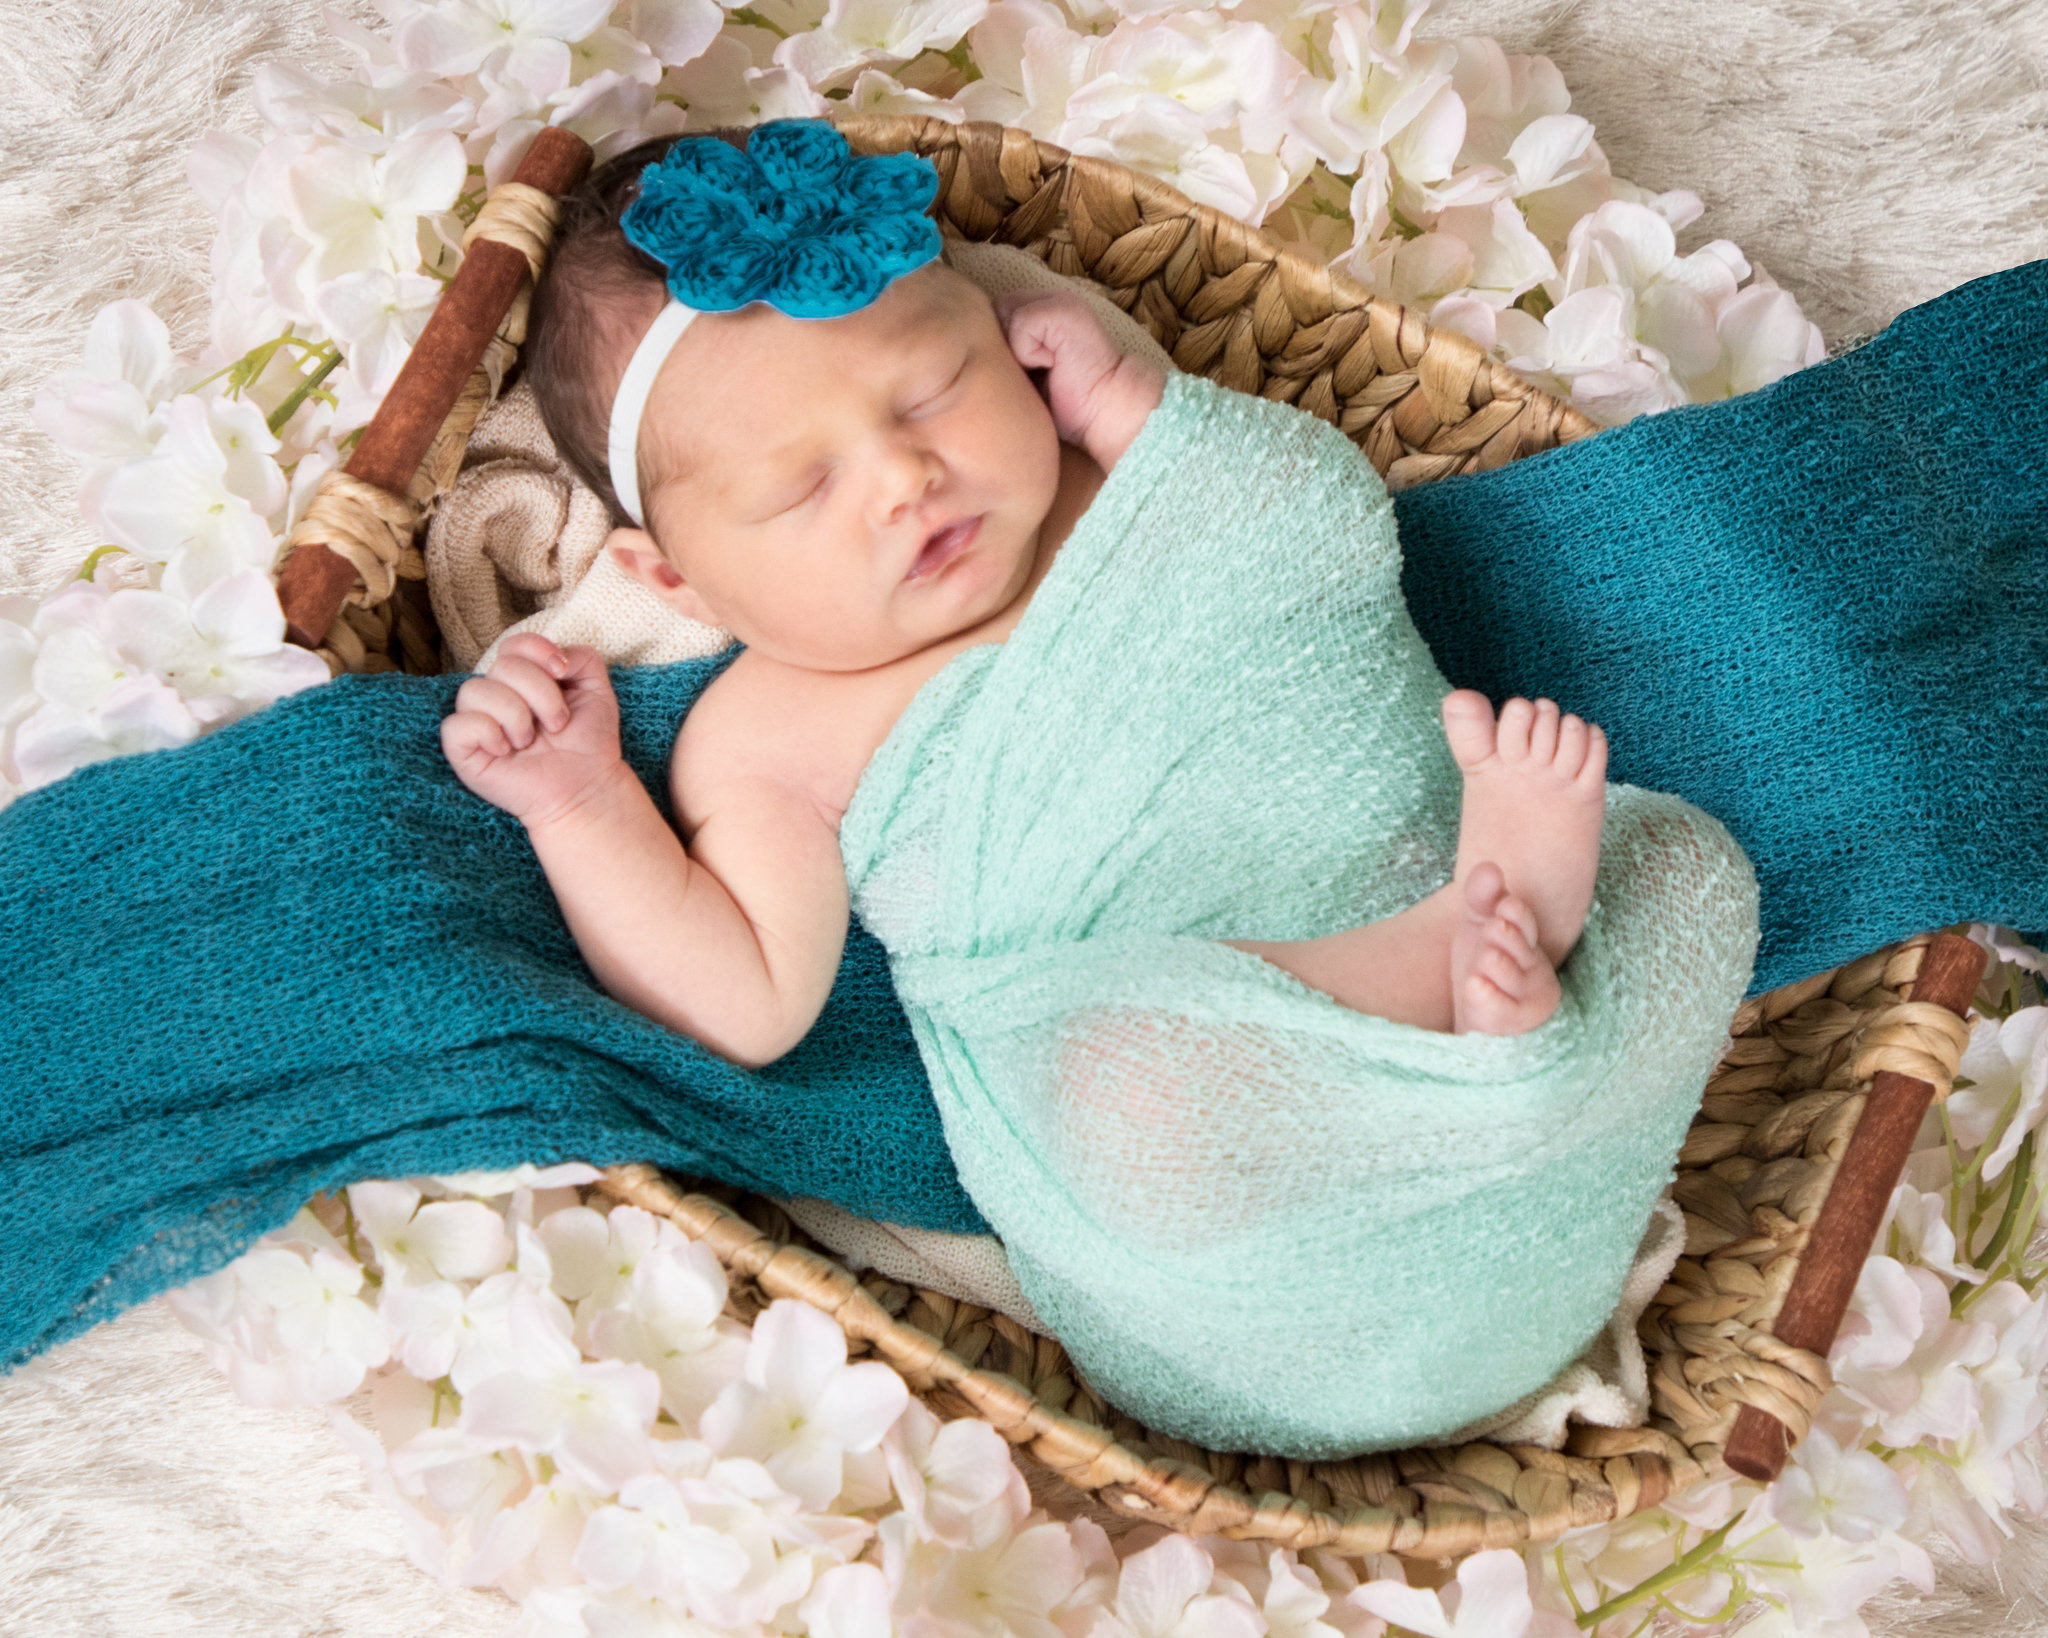 newborn baby in teal wrap